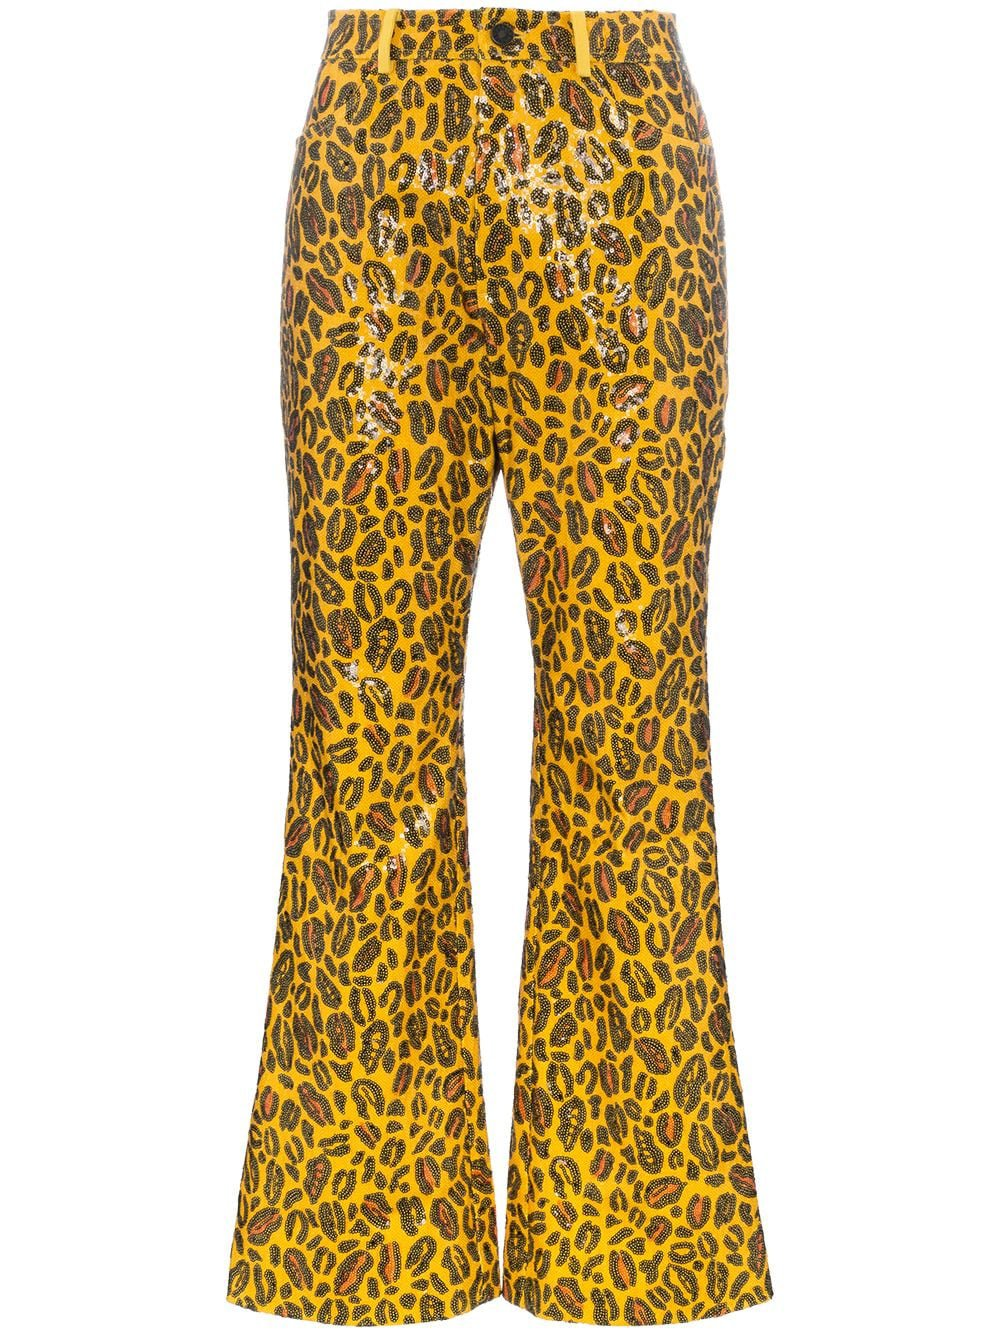 Charm's leopard printed sequin embellished trousers £118 - Buy Online - Mobile Friendly, Fast Delivery